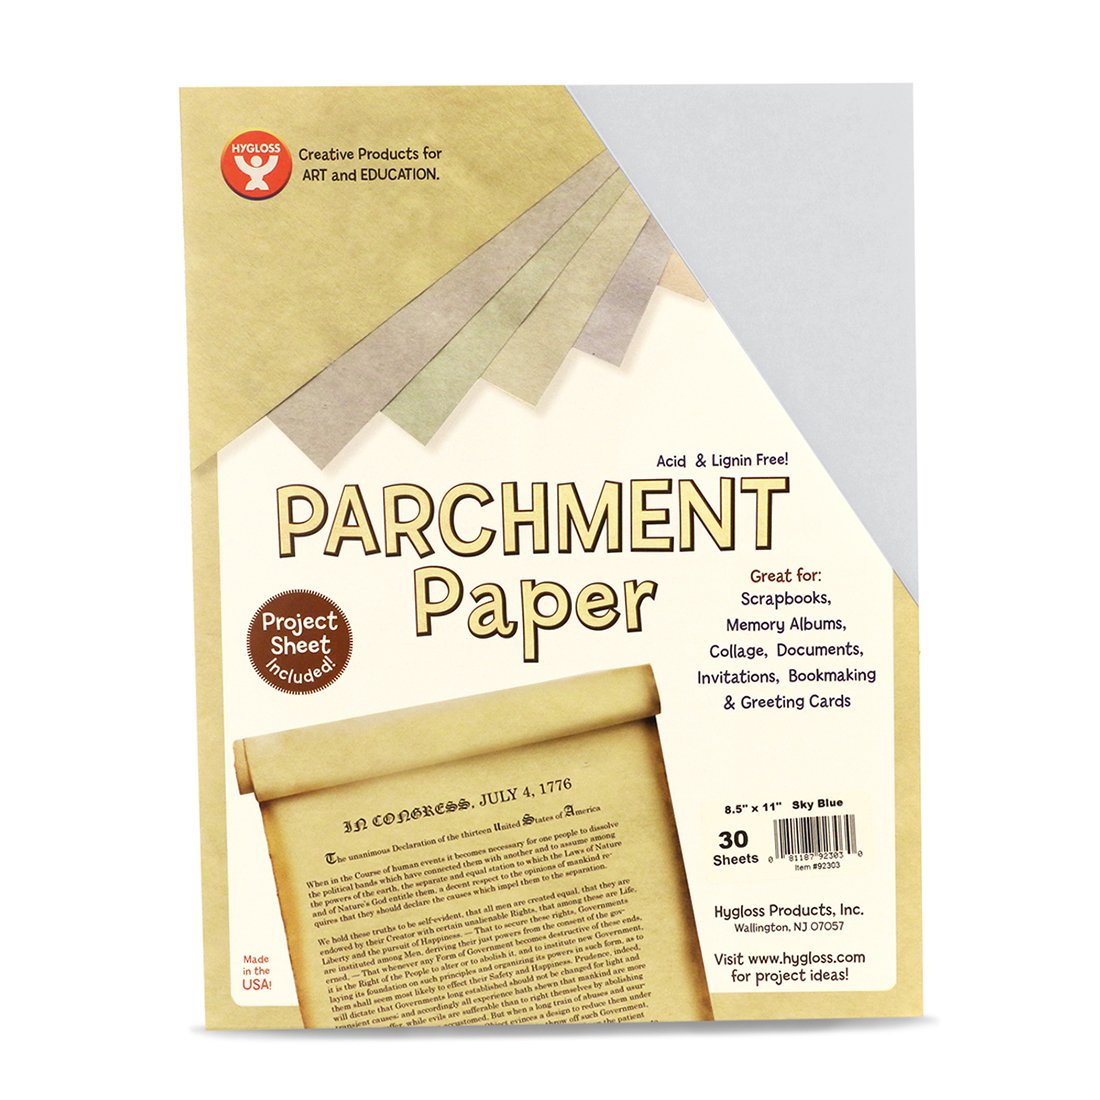 Printer Friendly 500 Sheets Hygloss 92355 Products Craft Parchment Paper Sheets 8-1//2 x 11 Made in USA Pink